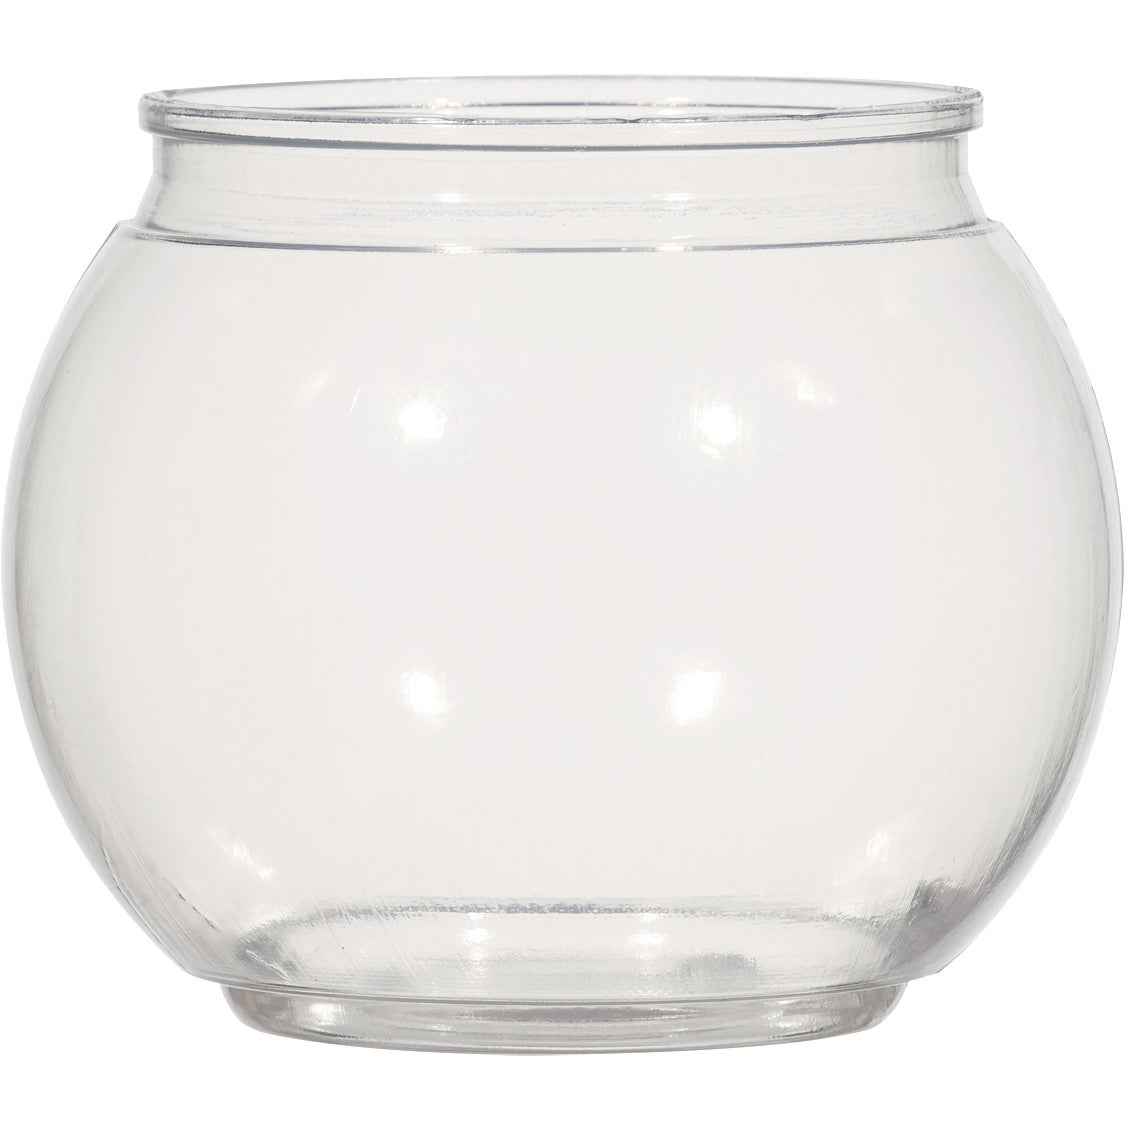 Fish Bowl Cup With Straw (46 Oz.)